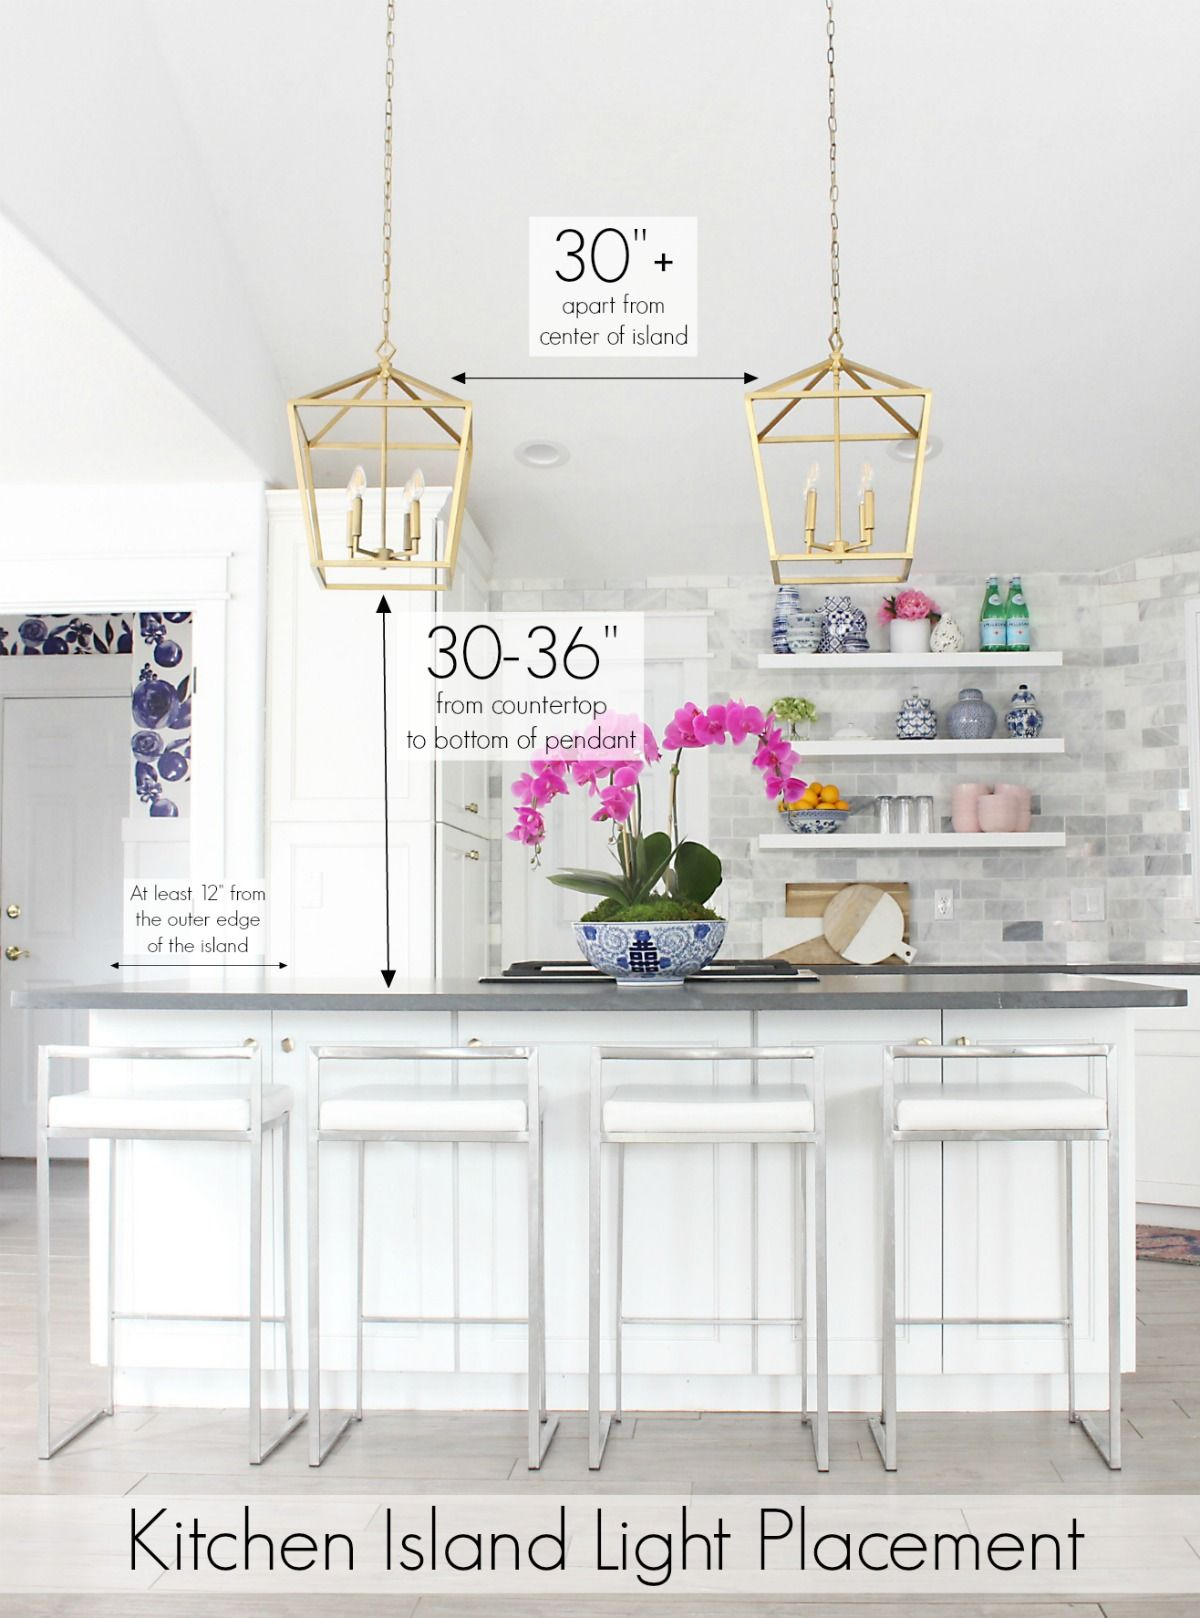 placement of pendant lights over kitchen island # 1